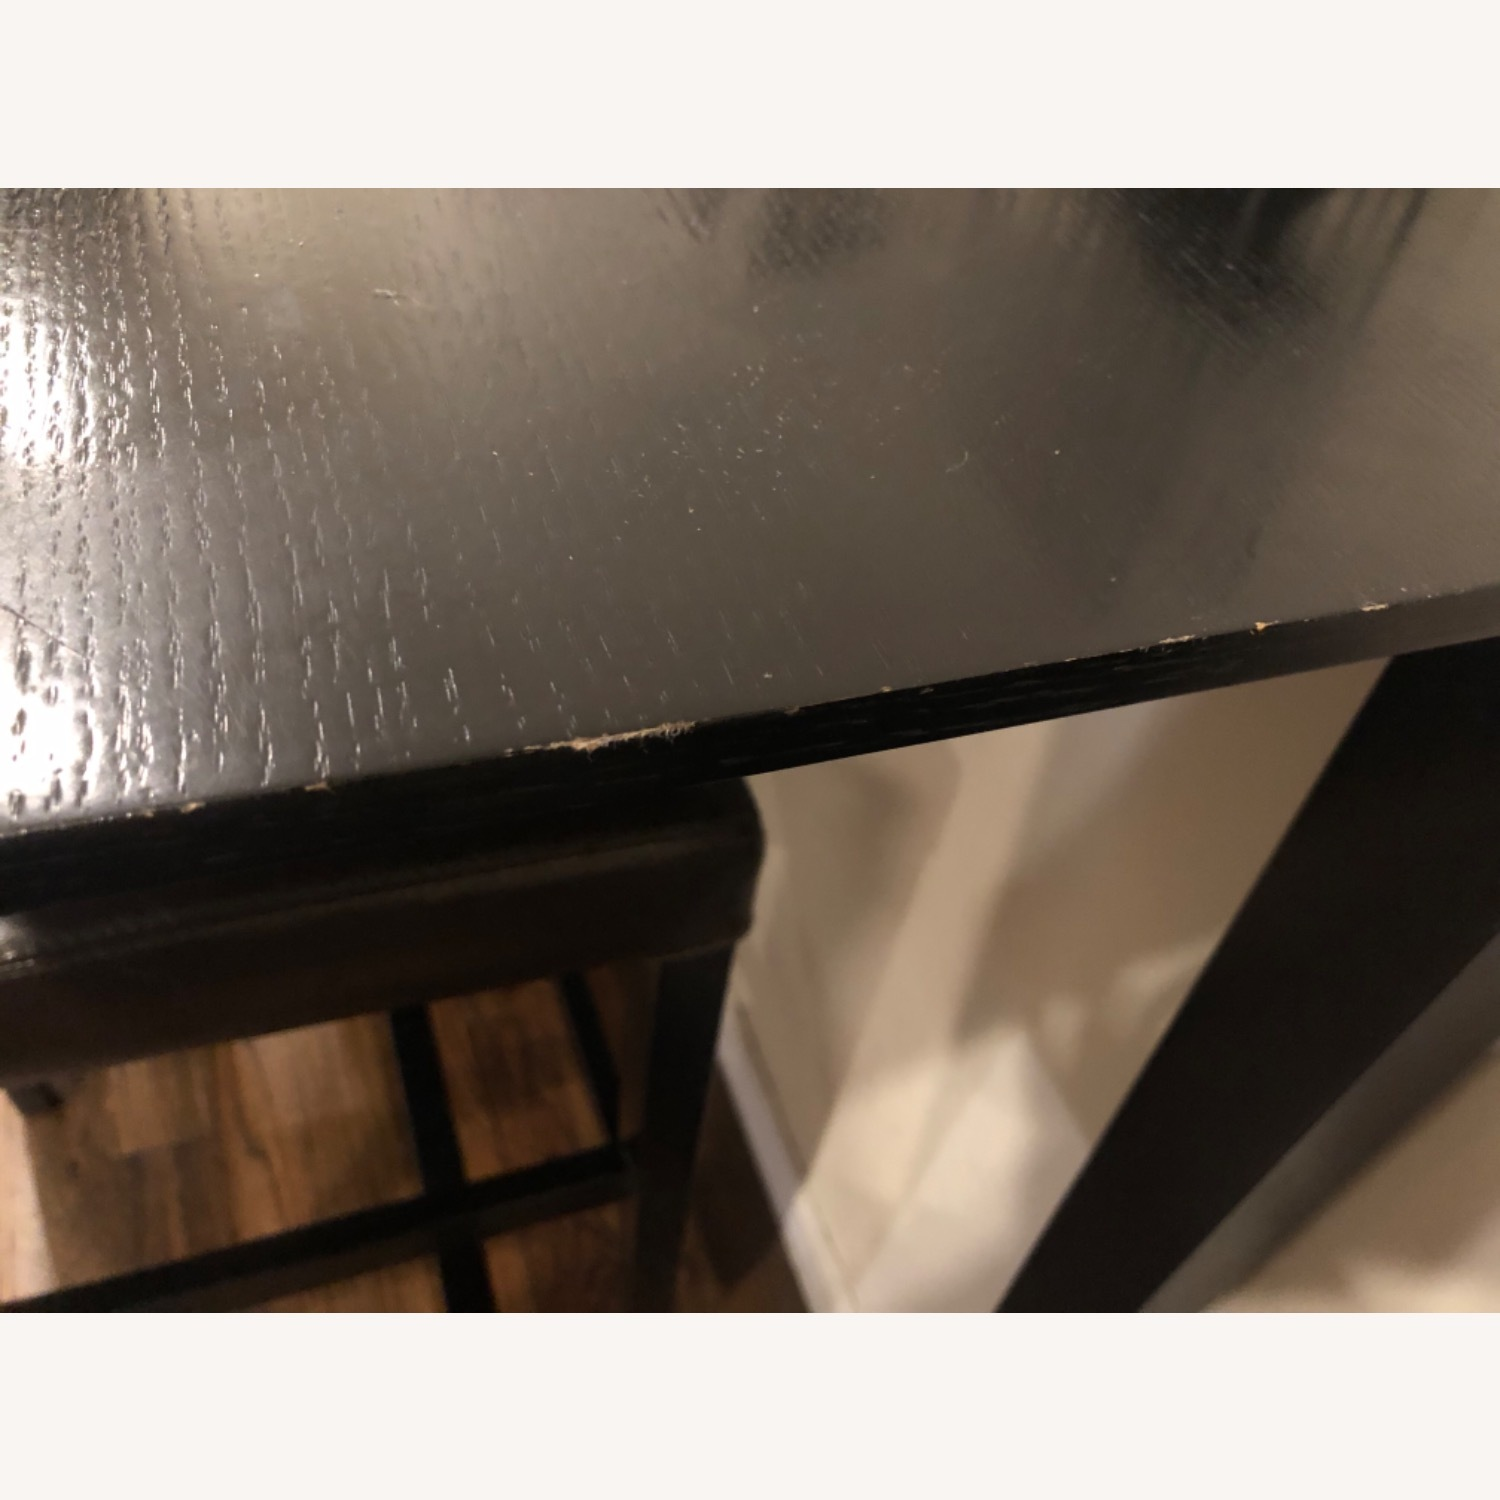 Crate and Barrel Brown Dining Table and 4 Chairs - image-5